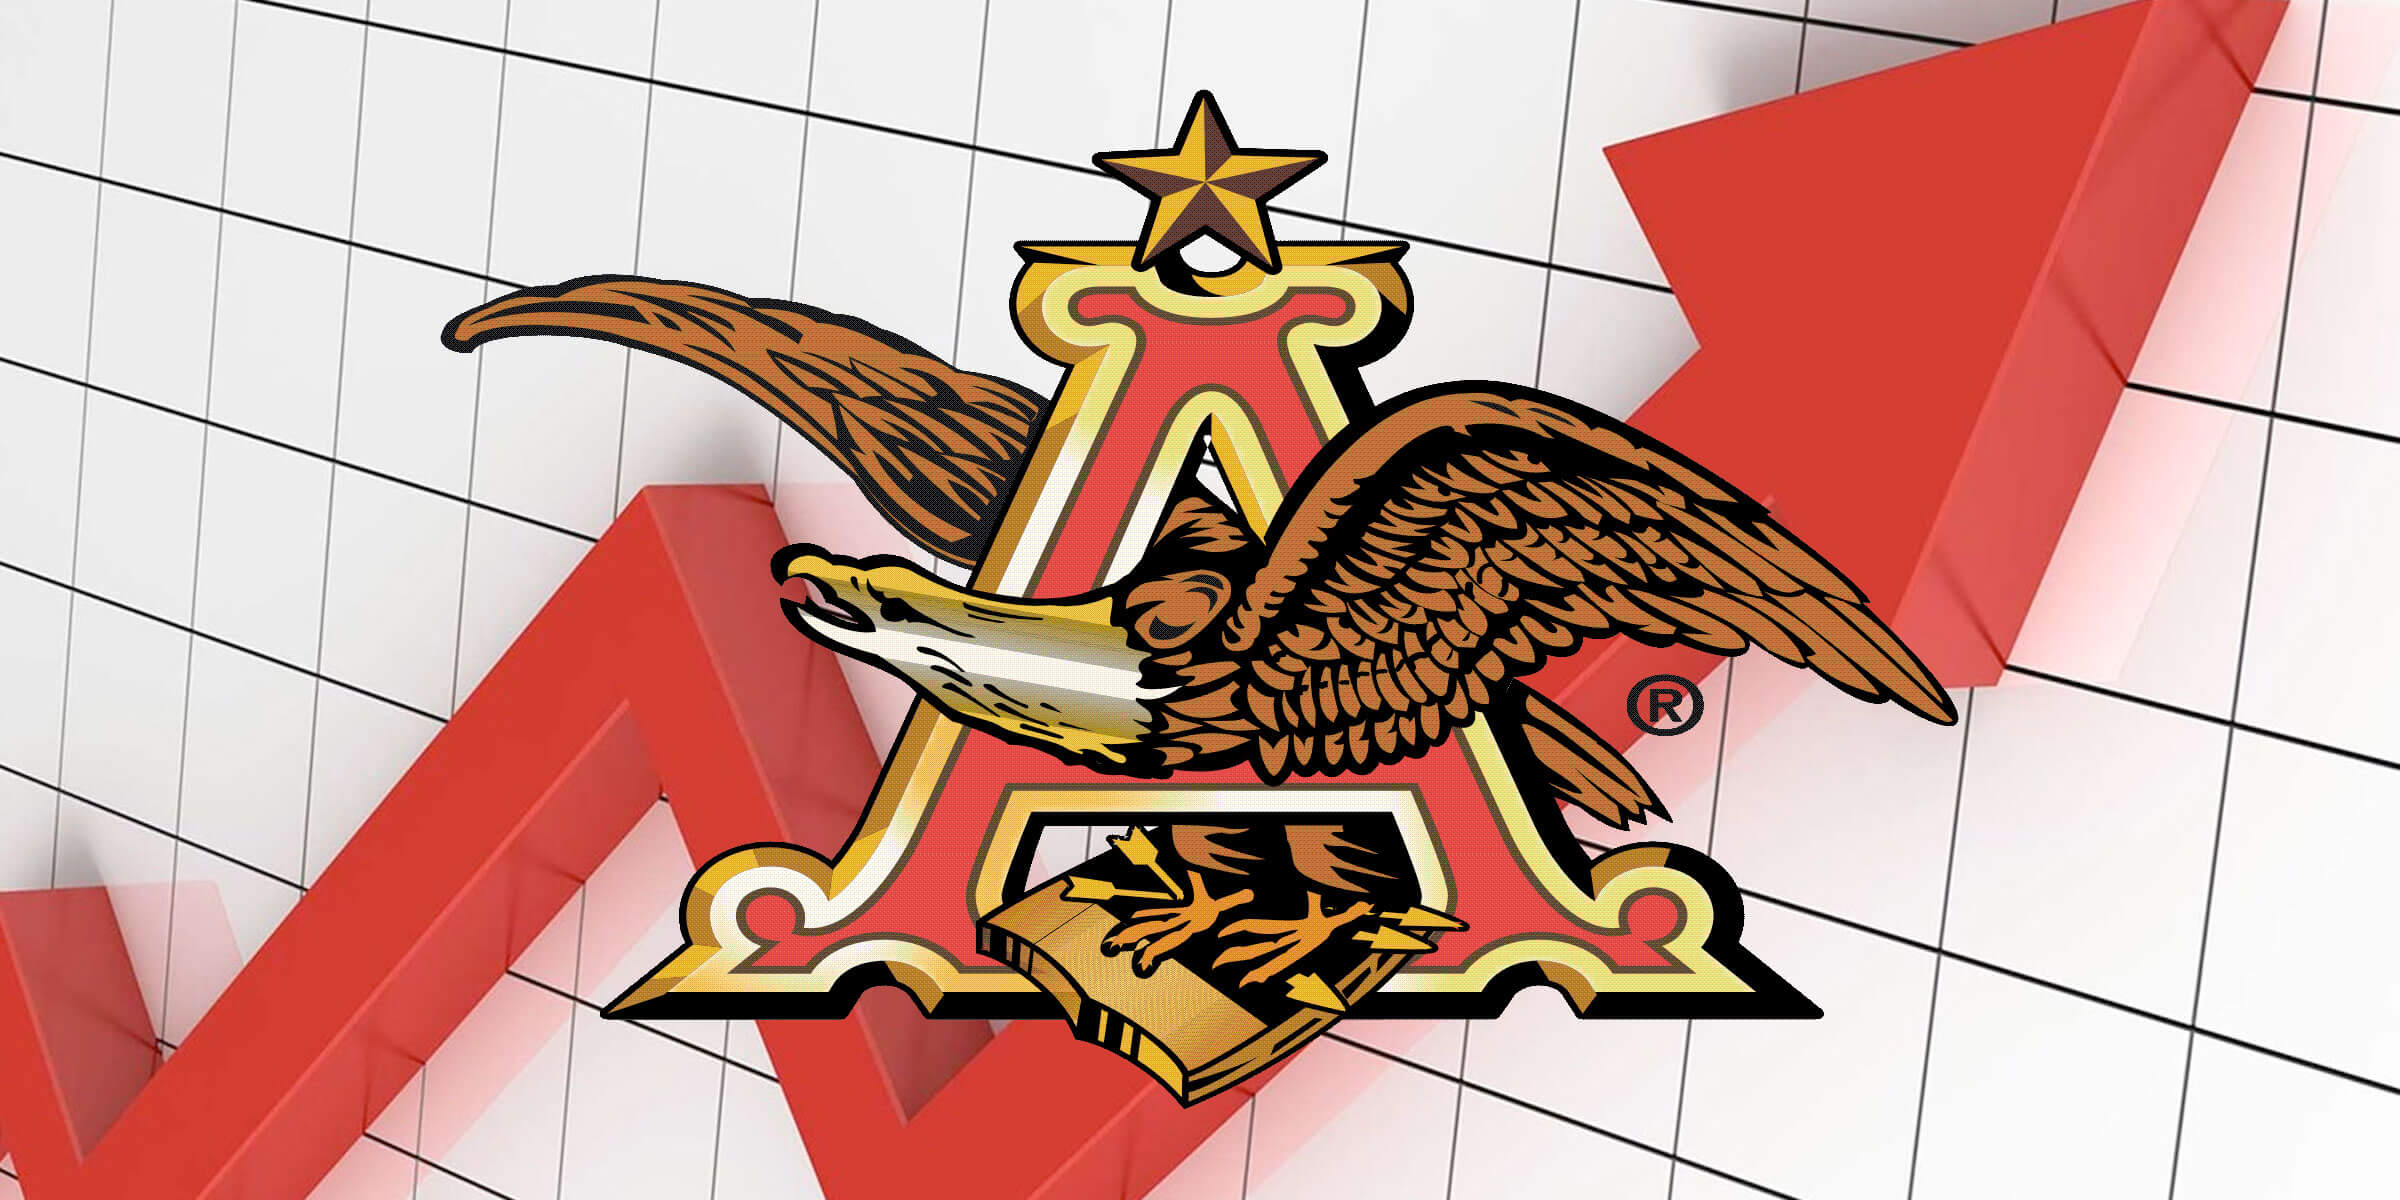 Anheuser-Busch Logo Set Against Chart Showing Growth